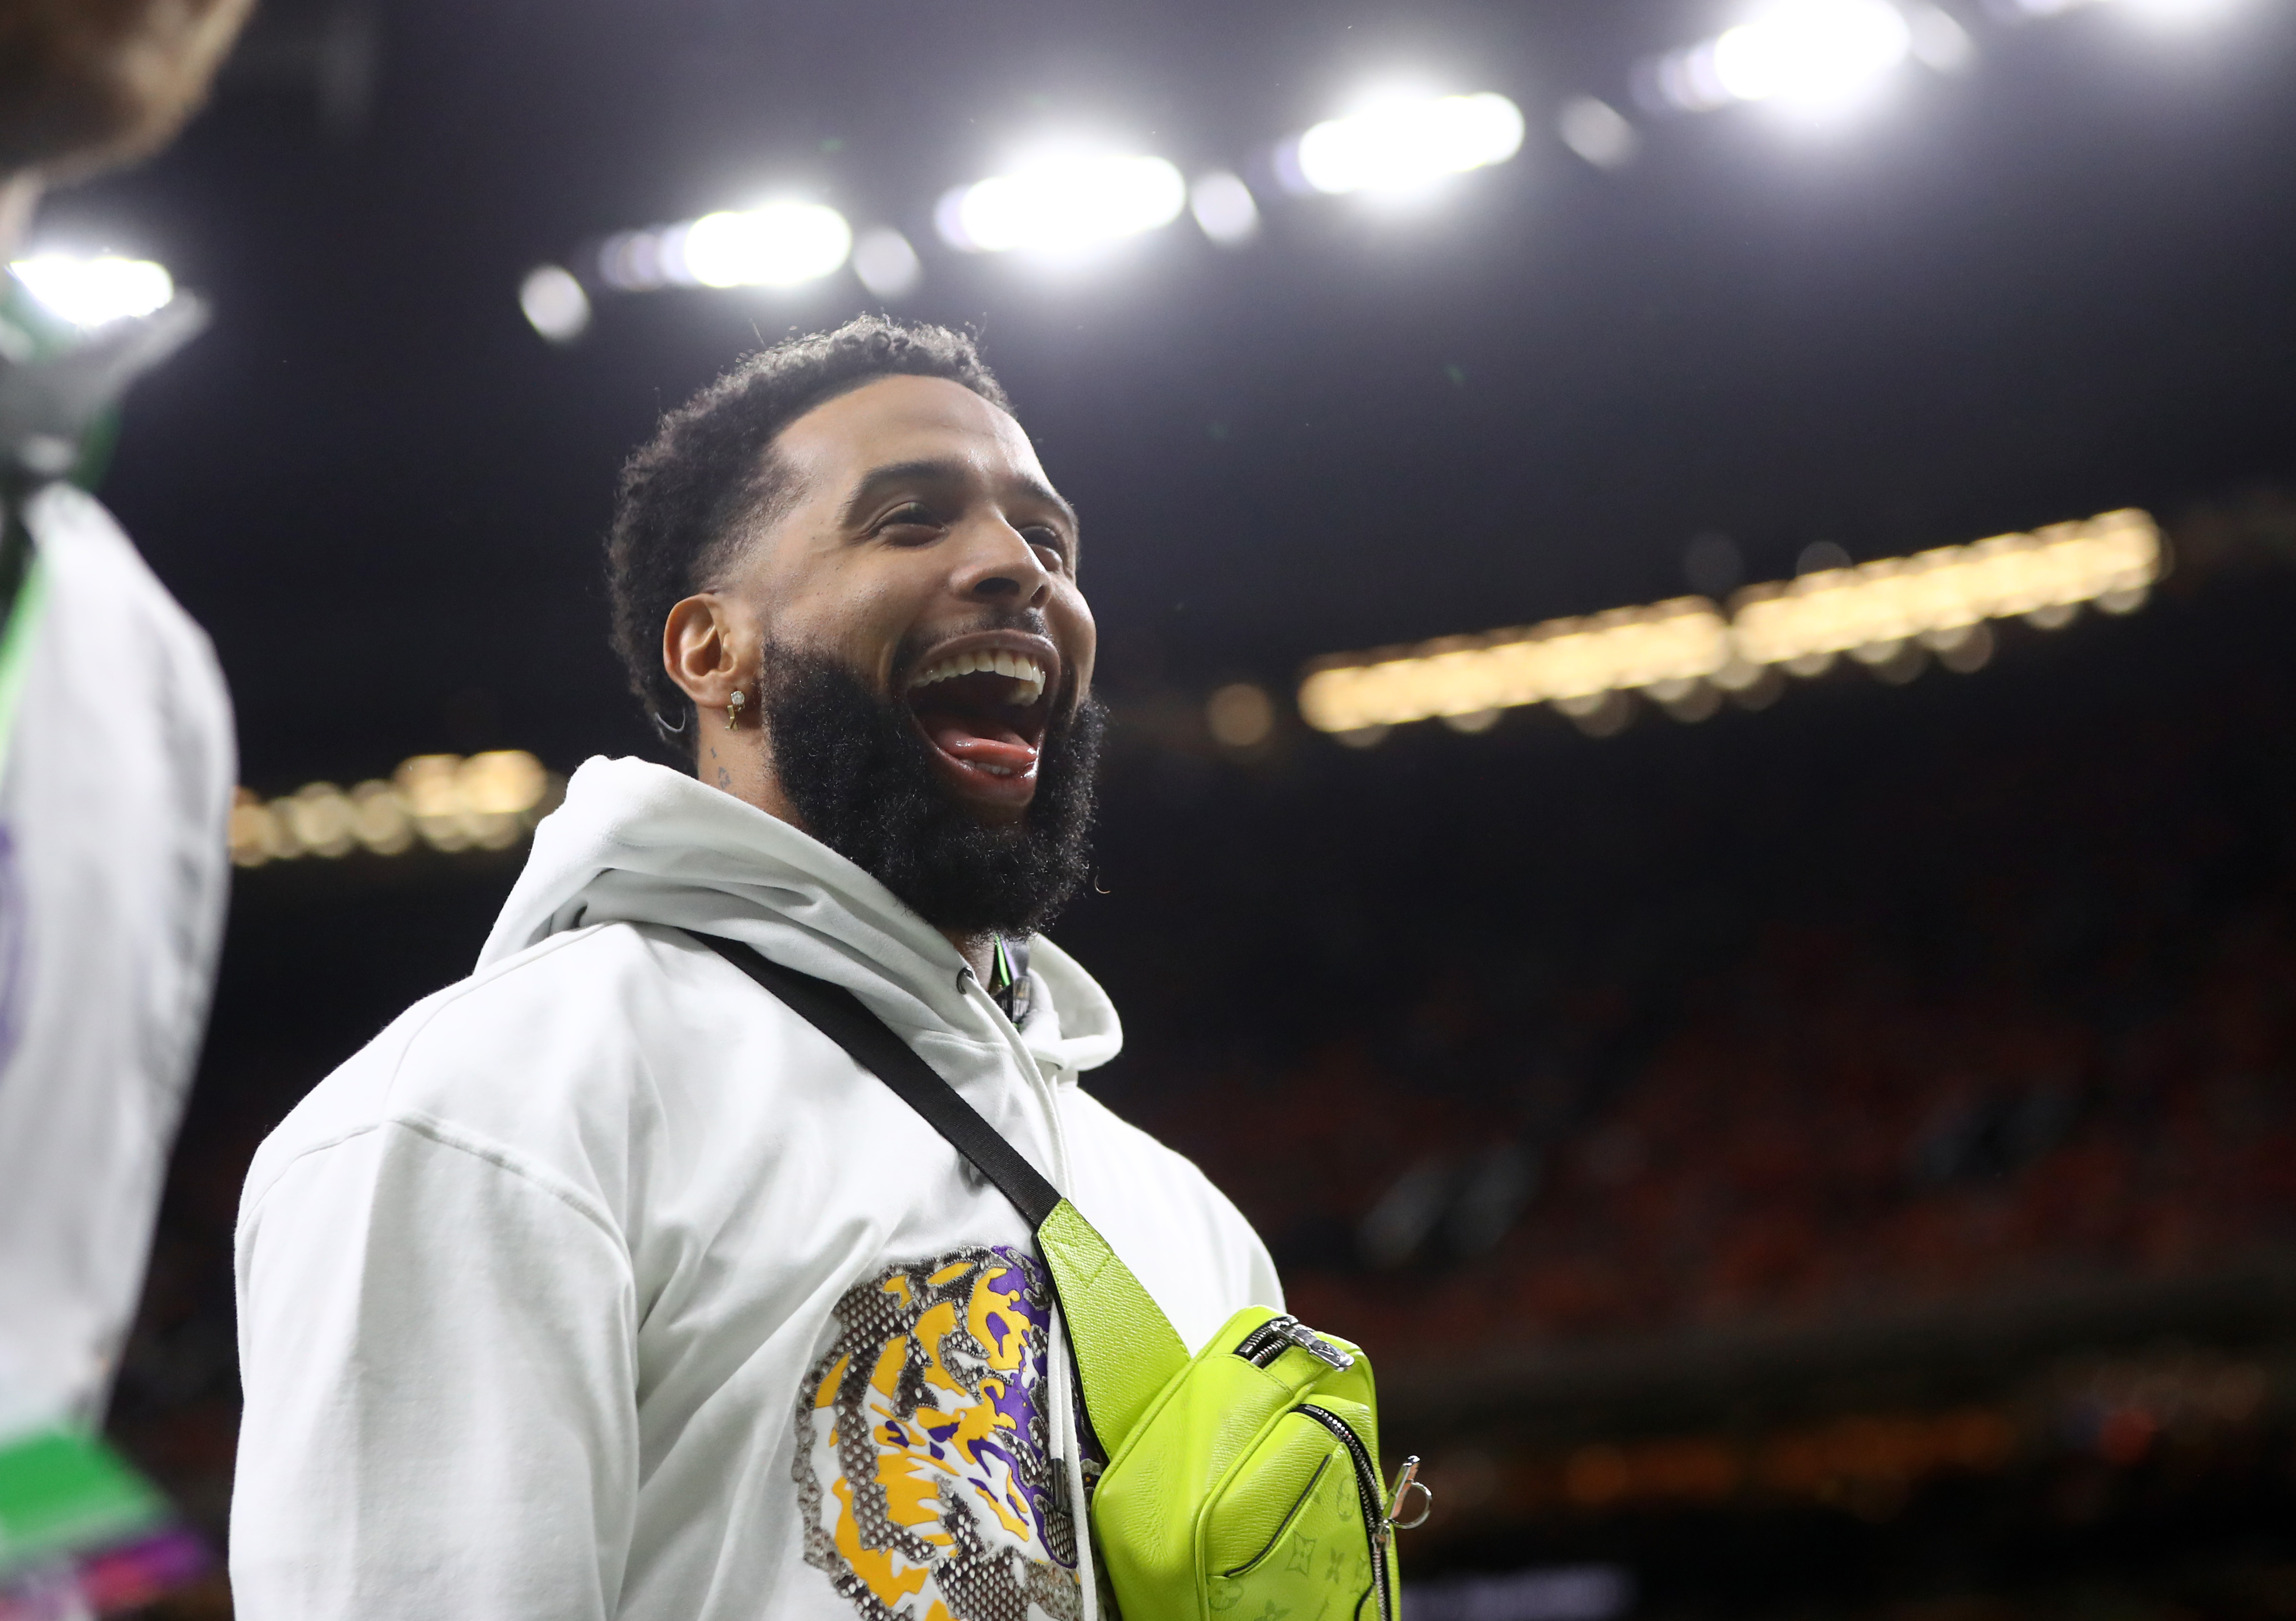 Odell Beckham Jr. calls out police, saying 'we demand that justice be served'